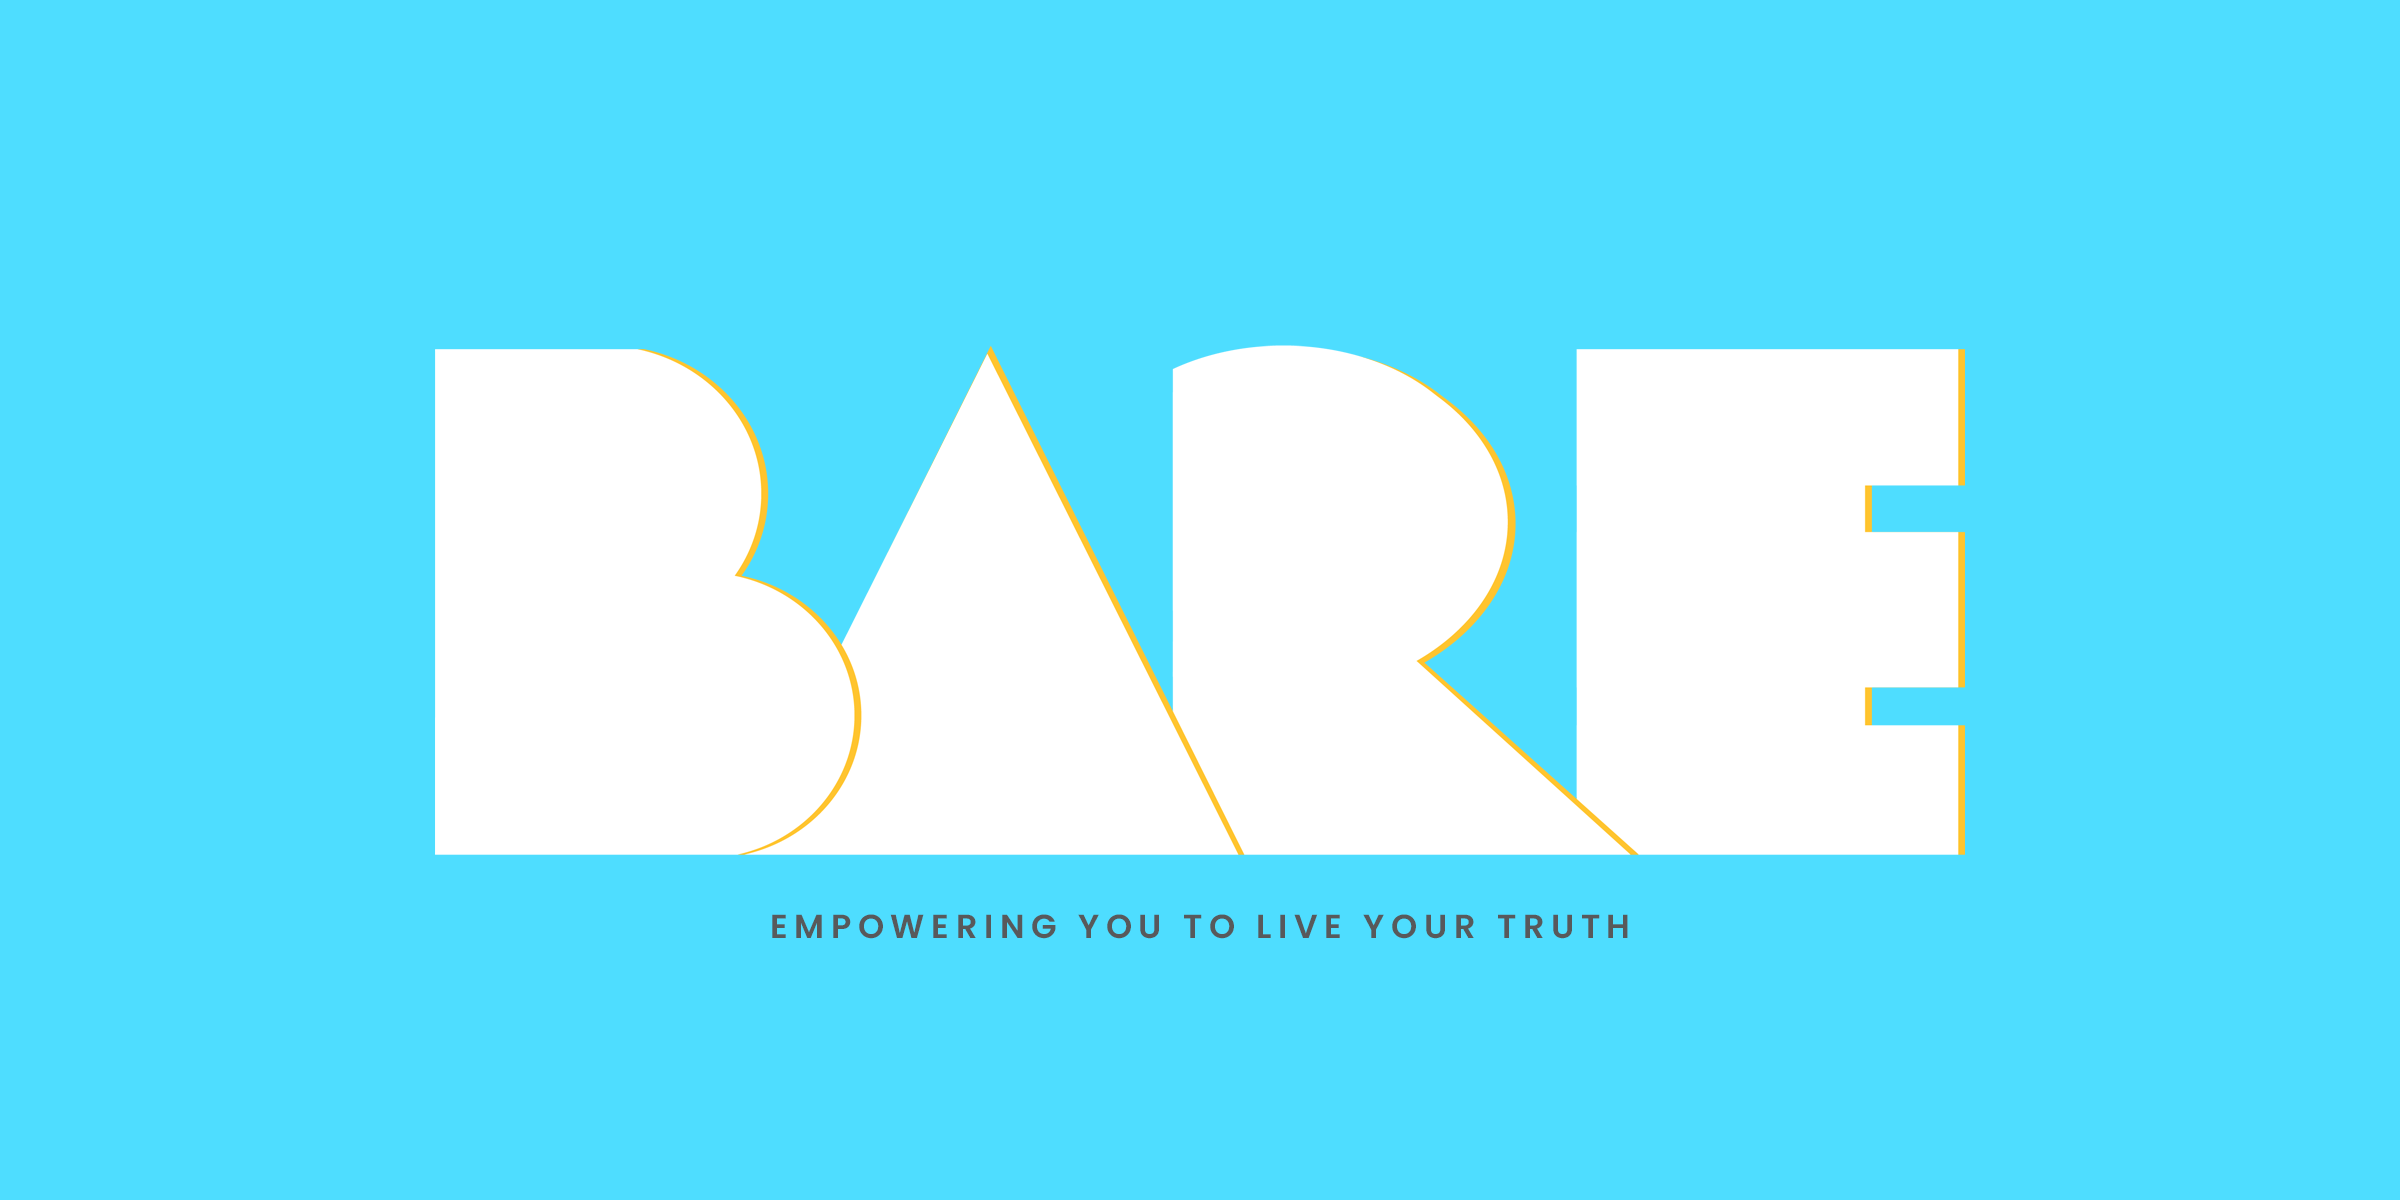 BARE | Being Actively Real Everyday - Empowering you to live your truth | @ilivebare |  www.livebare.today